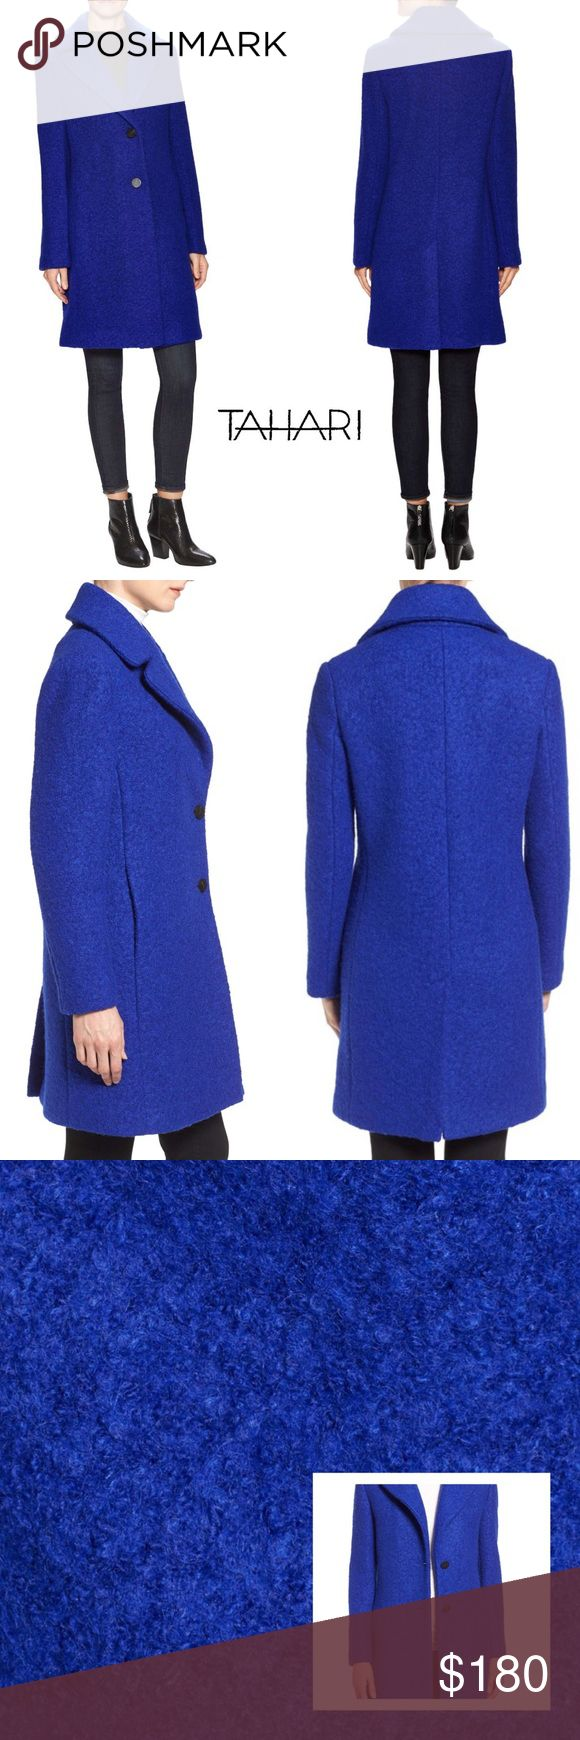 """JUST ARRIVED! TESSA BOYFRIEND COAT Boiled woolen texture adds a cozy tactile element to this chic longline coat with generous notched lapels for face-framing warmth. +36"""" length +Two-button closure +Notched lapels +Long sleeves +Back vent +Fully lined +50% wool, 50% polyester *Dry clean  MEASUREMENTS to come  +Want to be notified of price change? Like this Listing  Bundle Discount ^ No Trades ^ Make Offers Thur Offer Button ^ Have a question? Please Ask! T Tahari Jackets & Coats Pea Coats"""